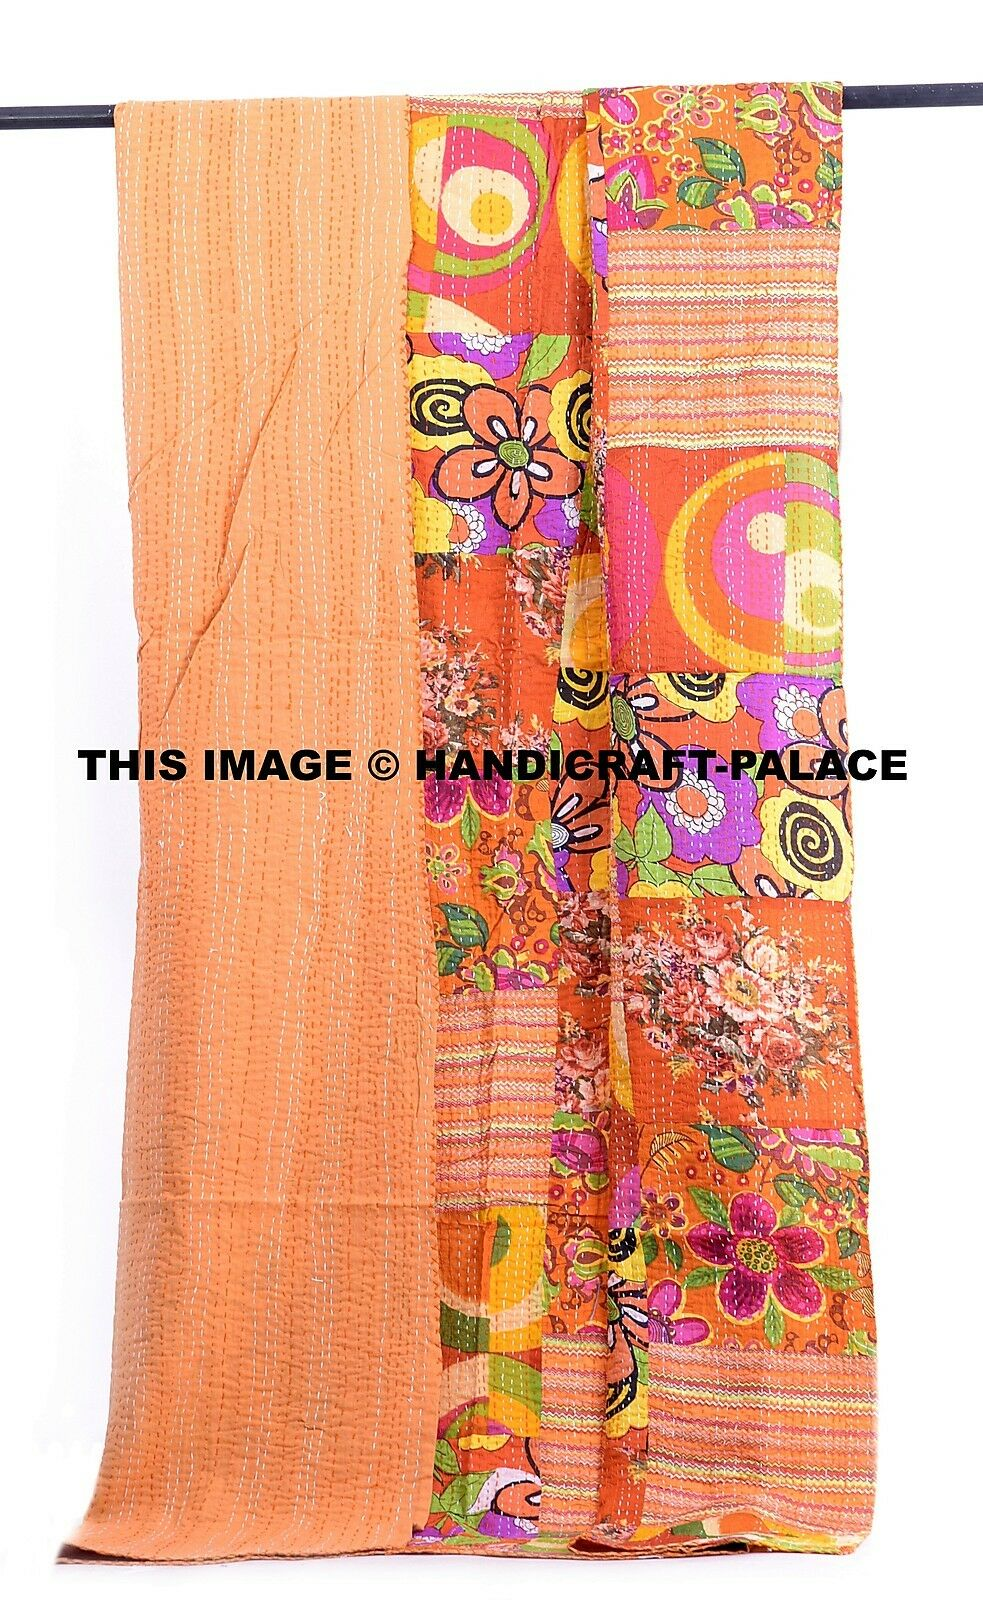 Cotton Gudri Kantha Quilt Indian Patchwork Bedspread Bedcover Throw Twin Blanket